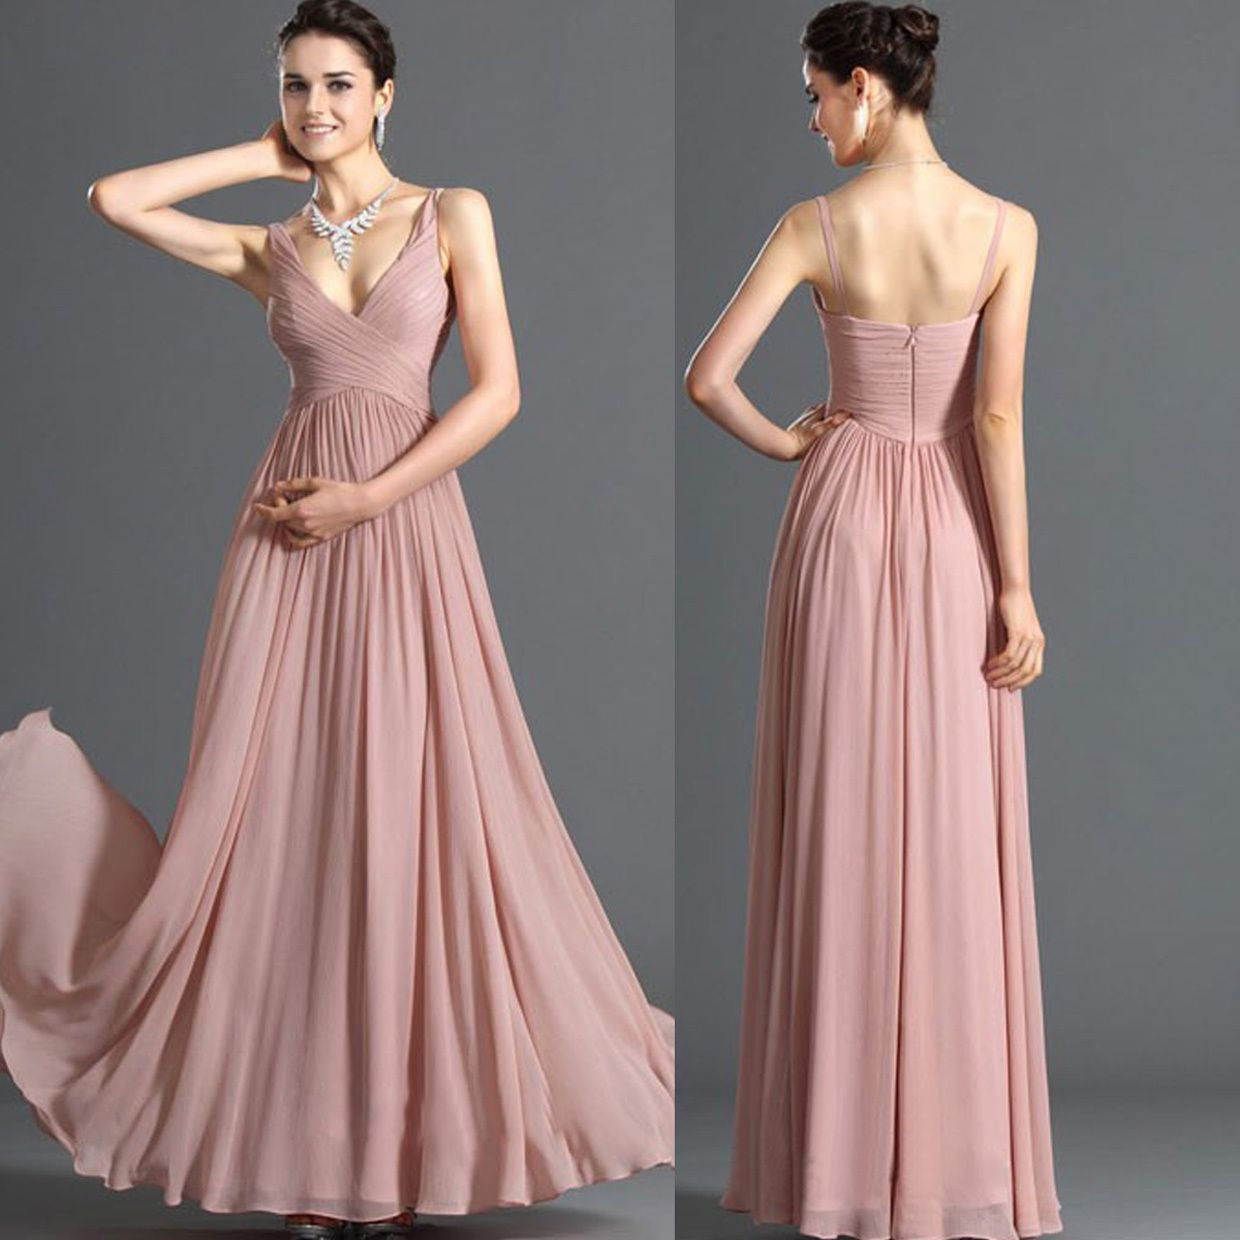 vintage night dresses - Buscar con Google | Clothes! | Pinterest ...